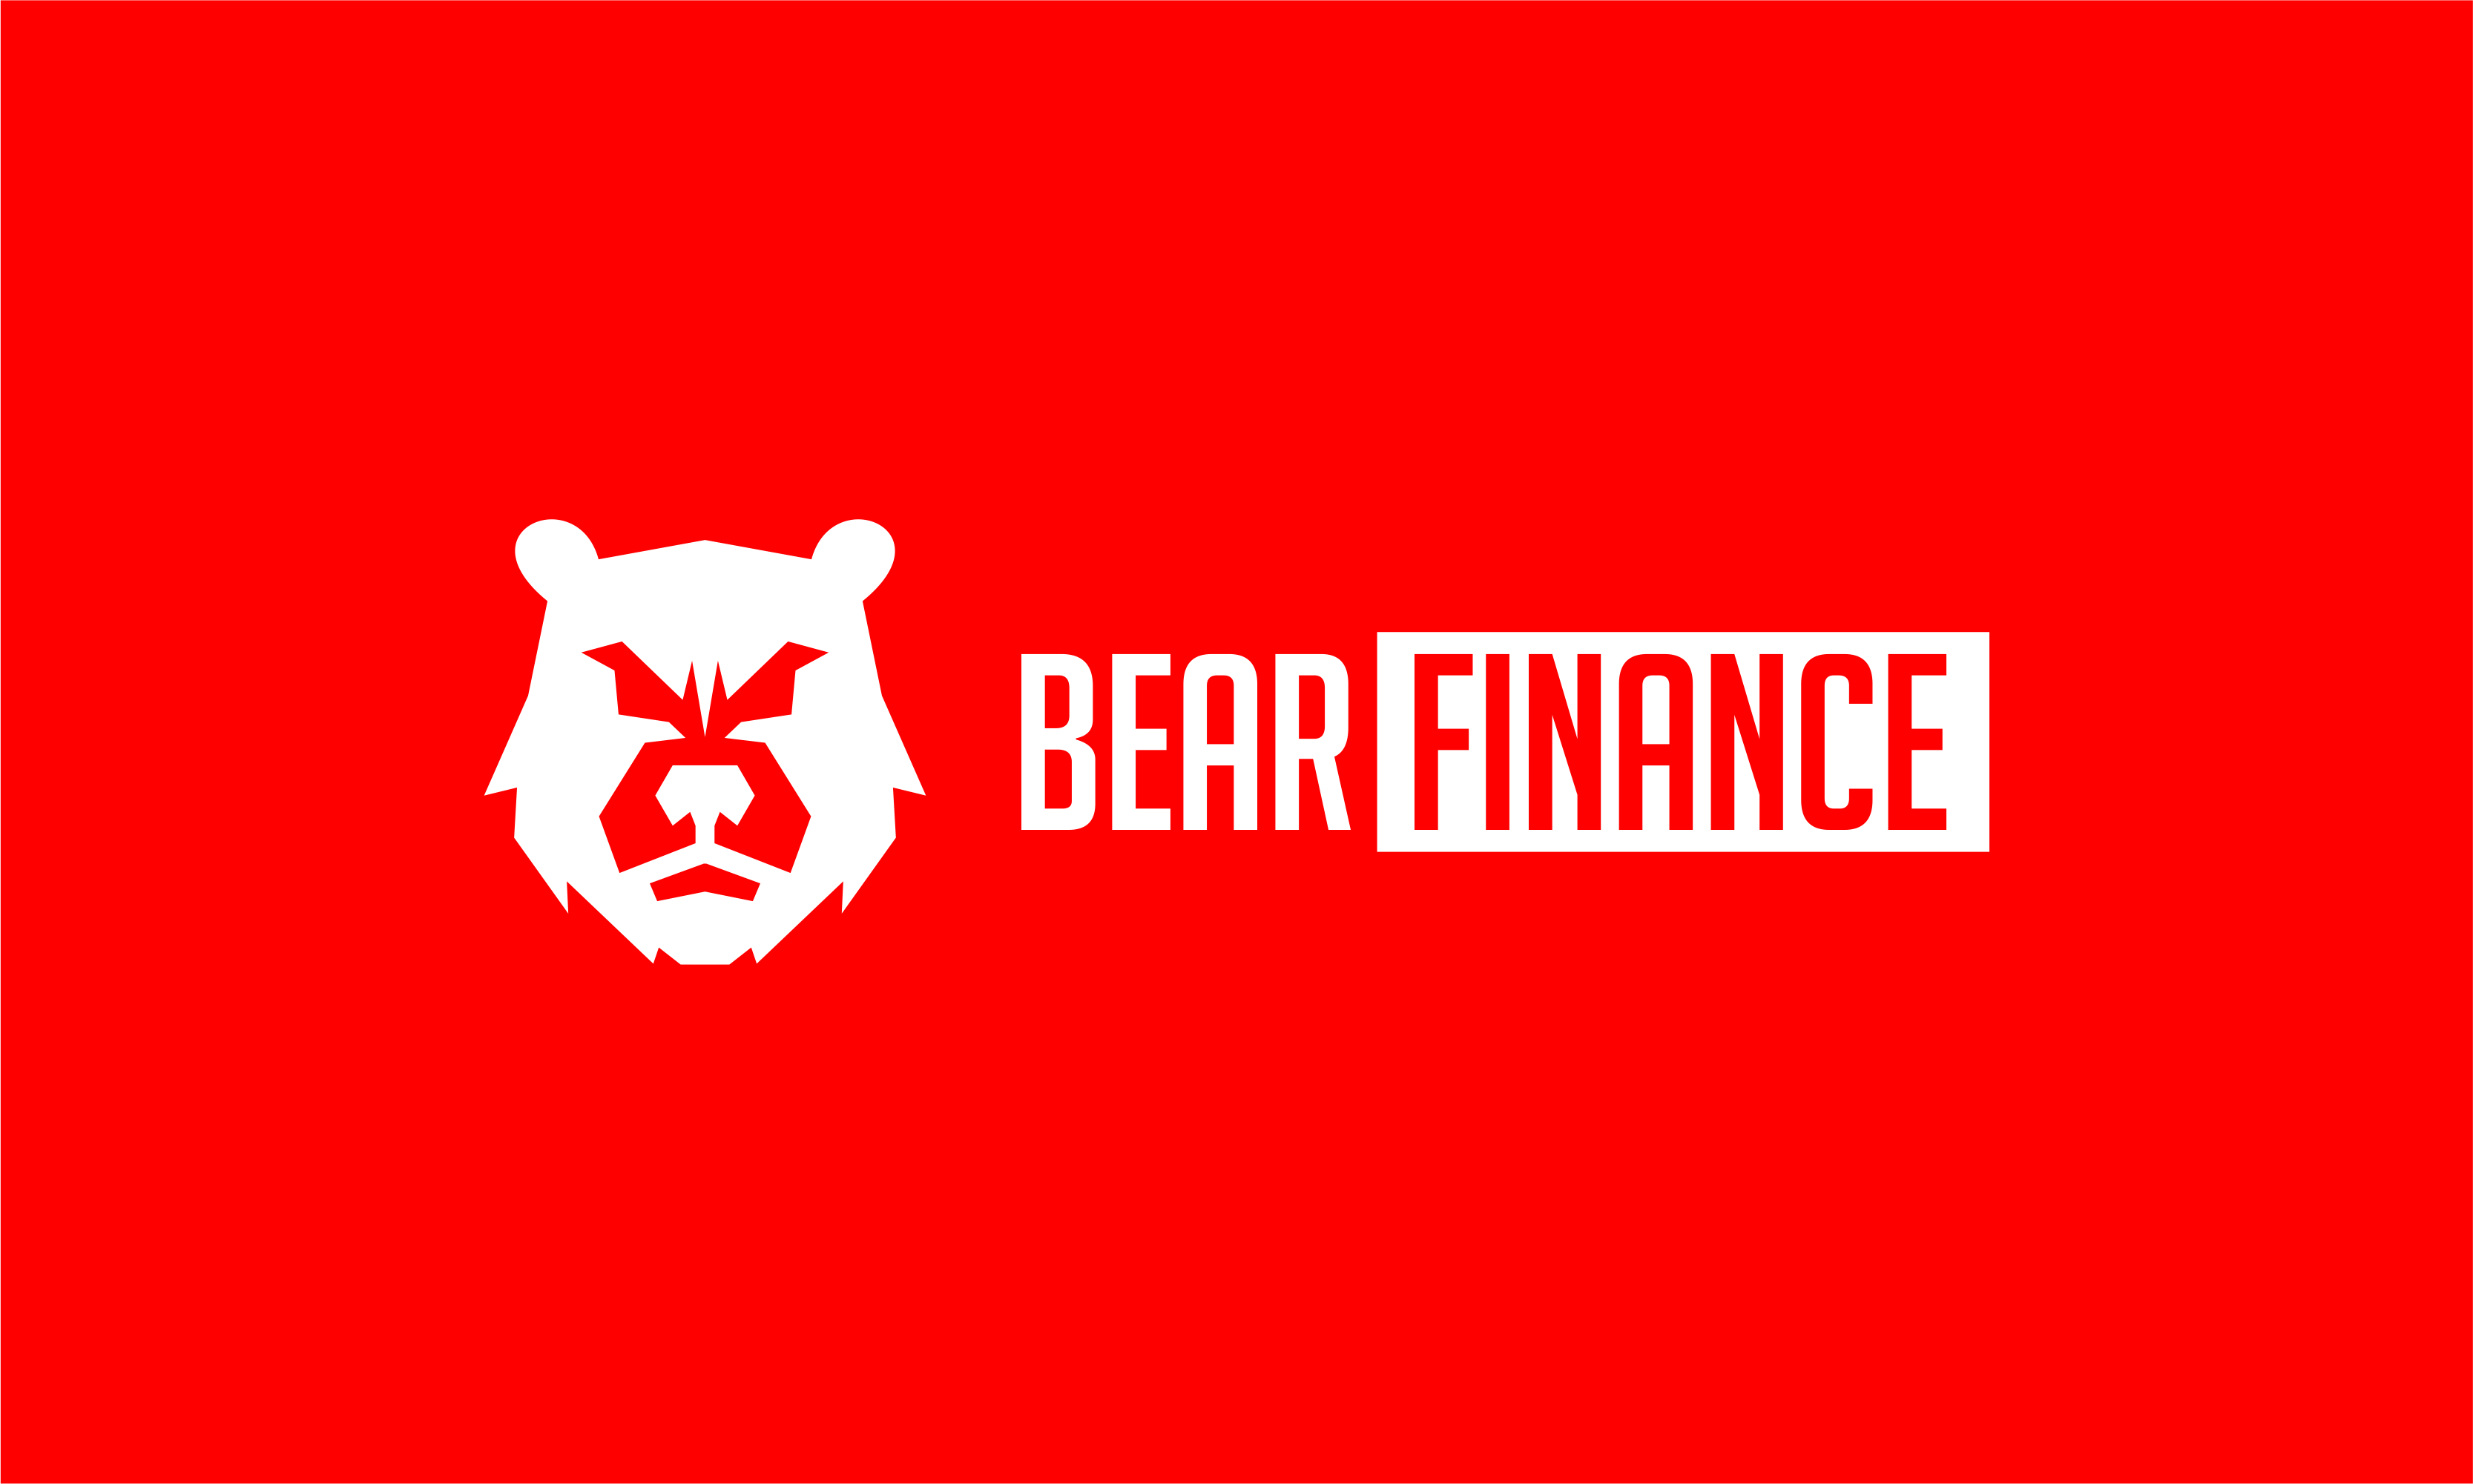 Bearfinance